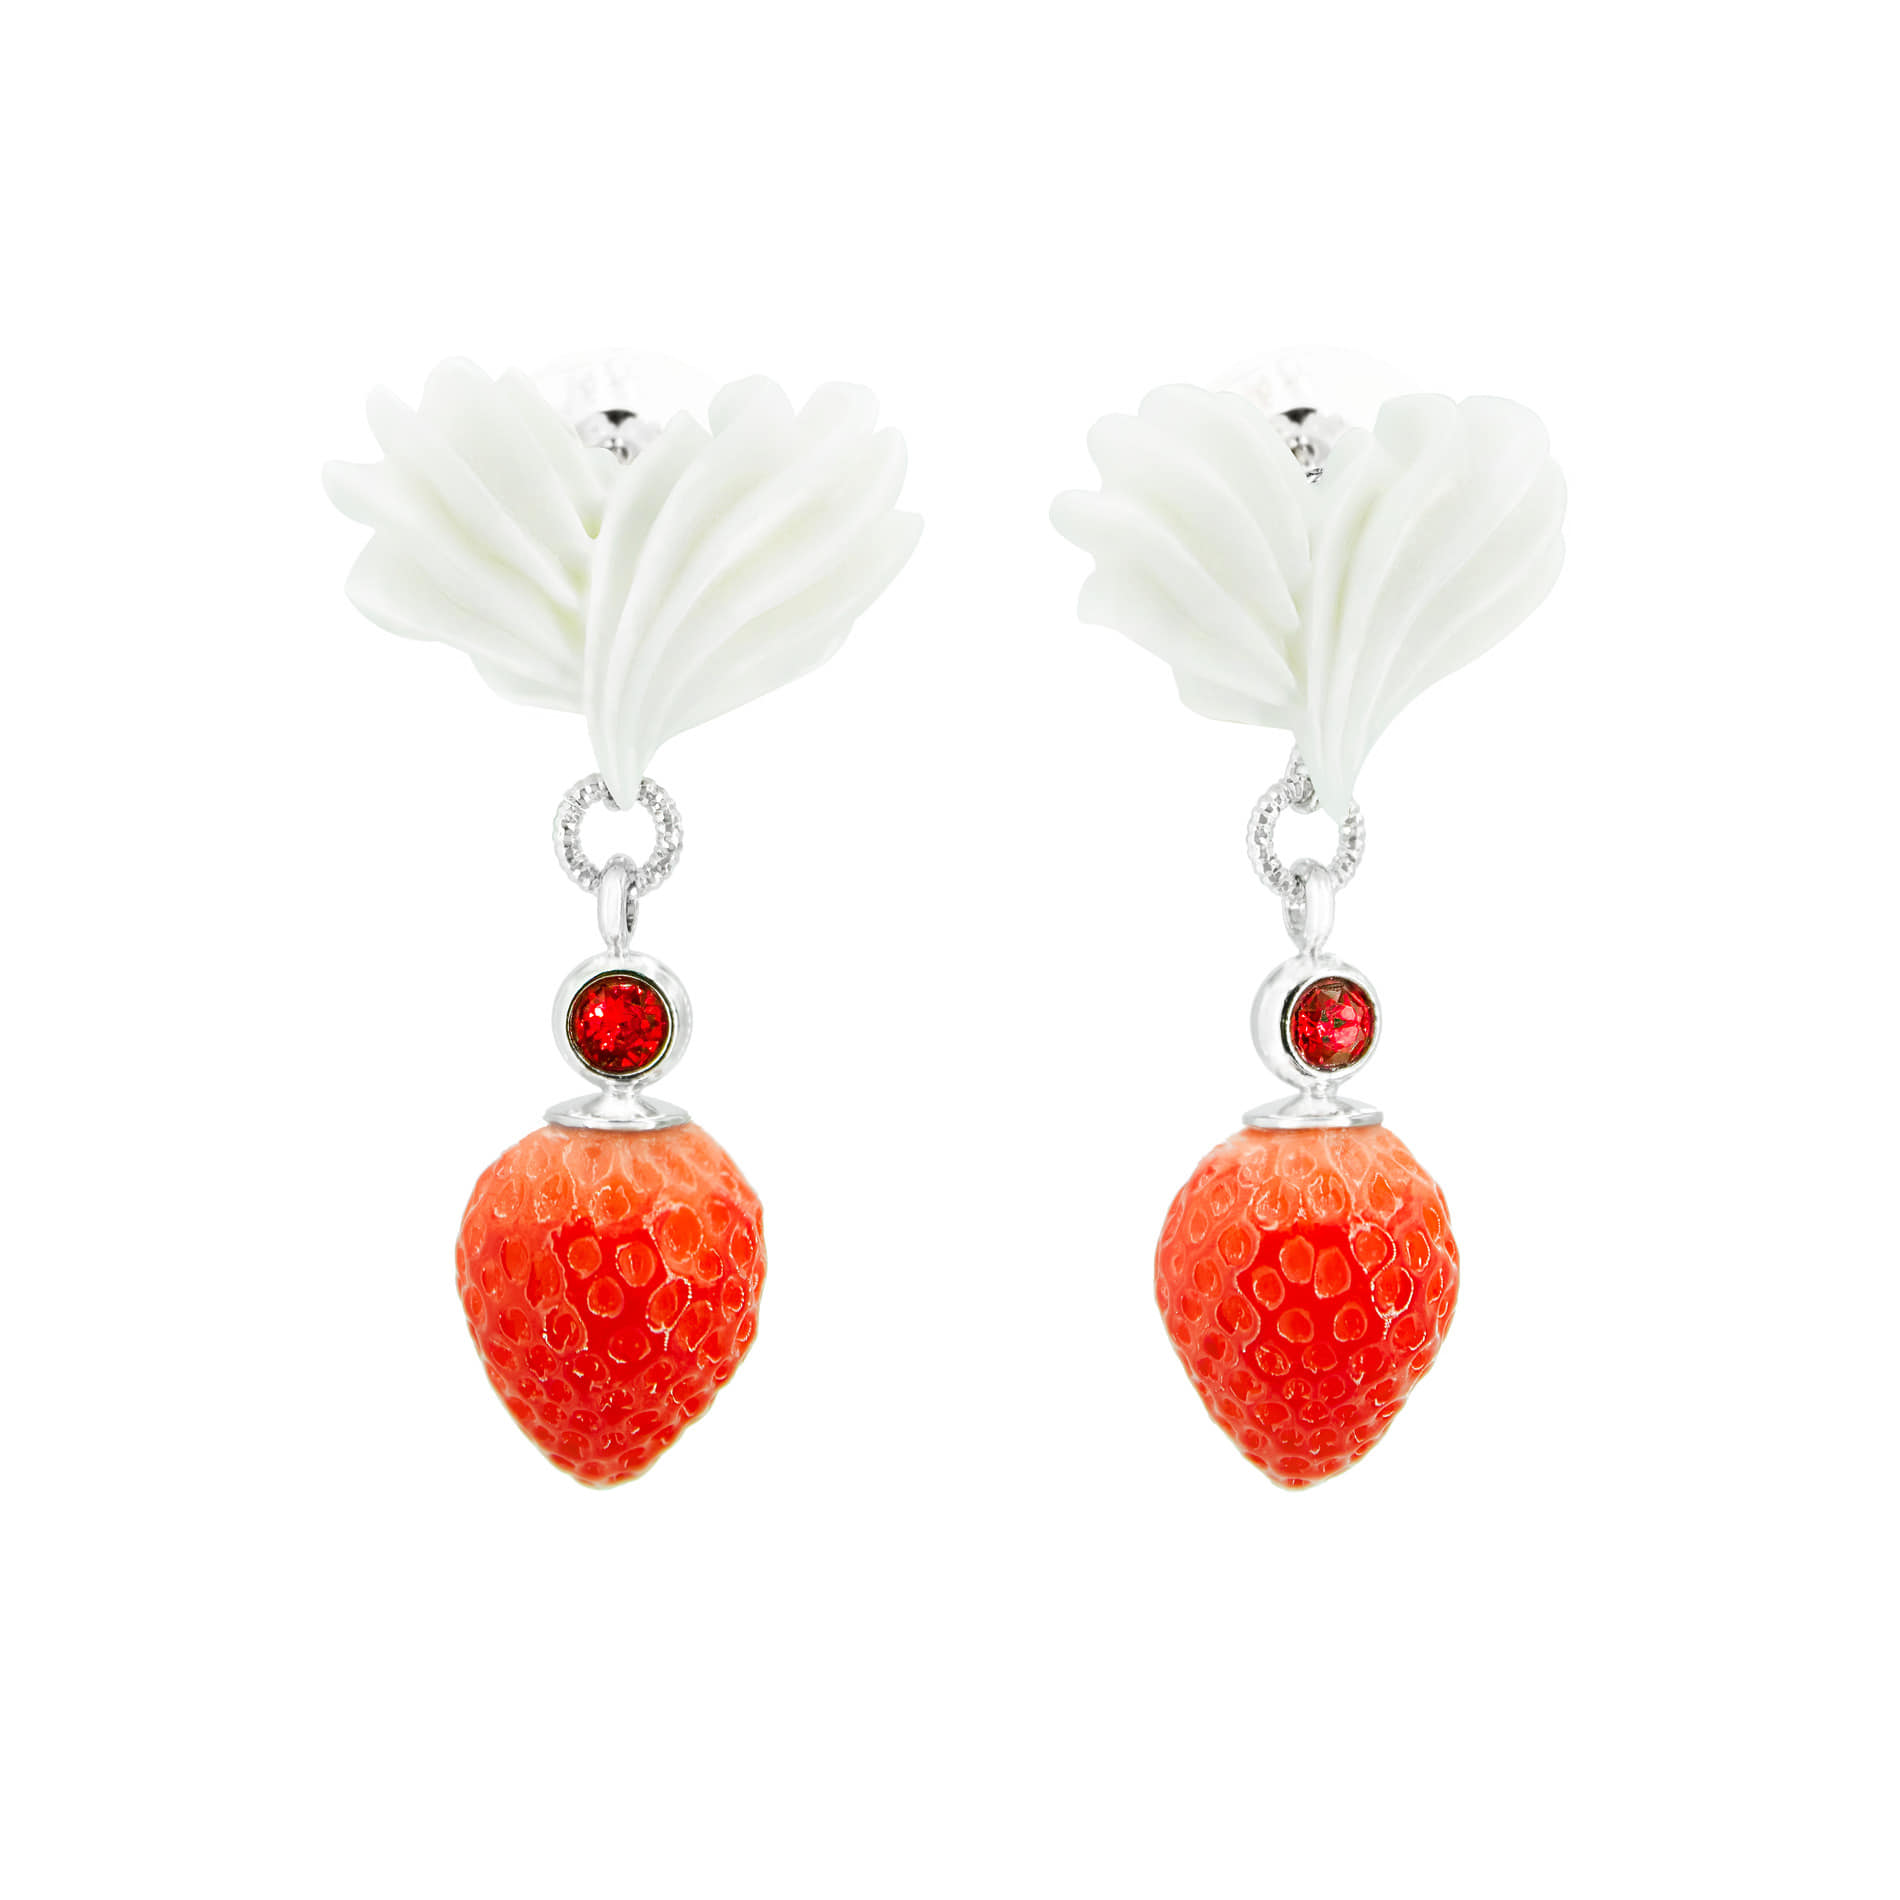 WHIPPING CREAM STRAWBERRY DROP EARRINGS (WHITE)